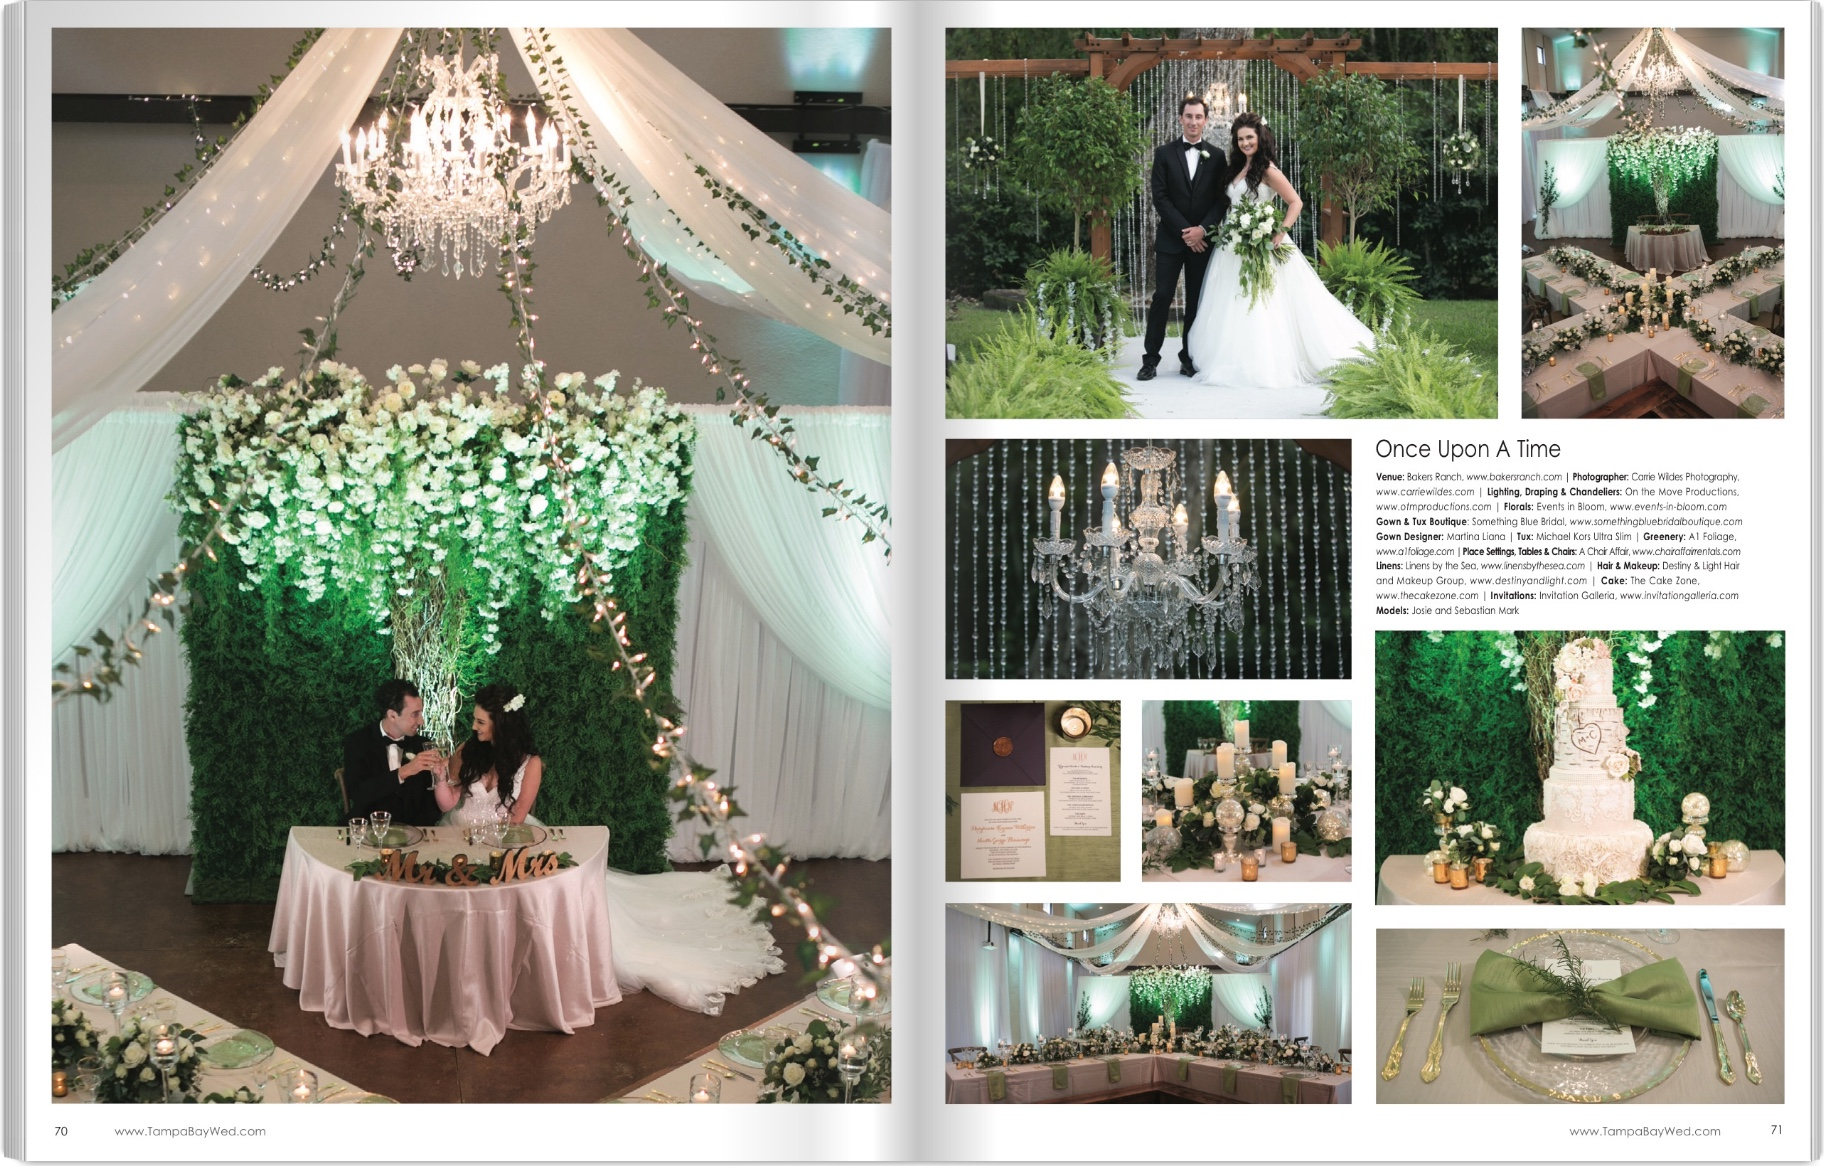 Tampa Bay Weddings Feature 3.jpeg